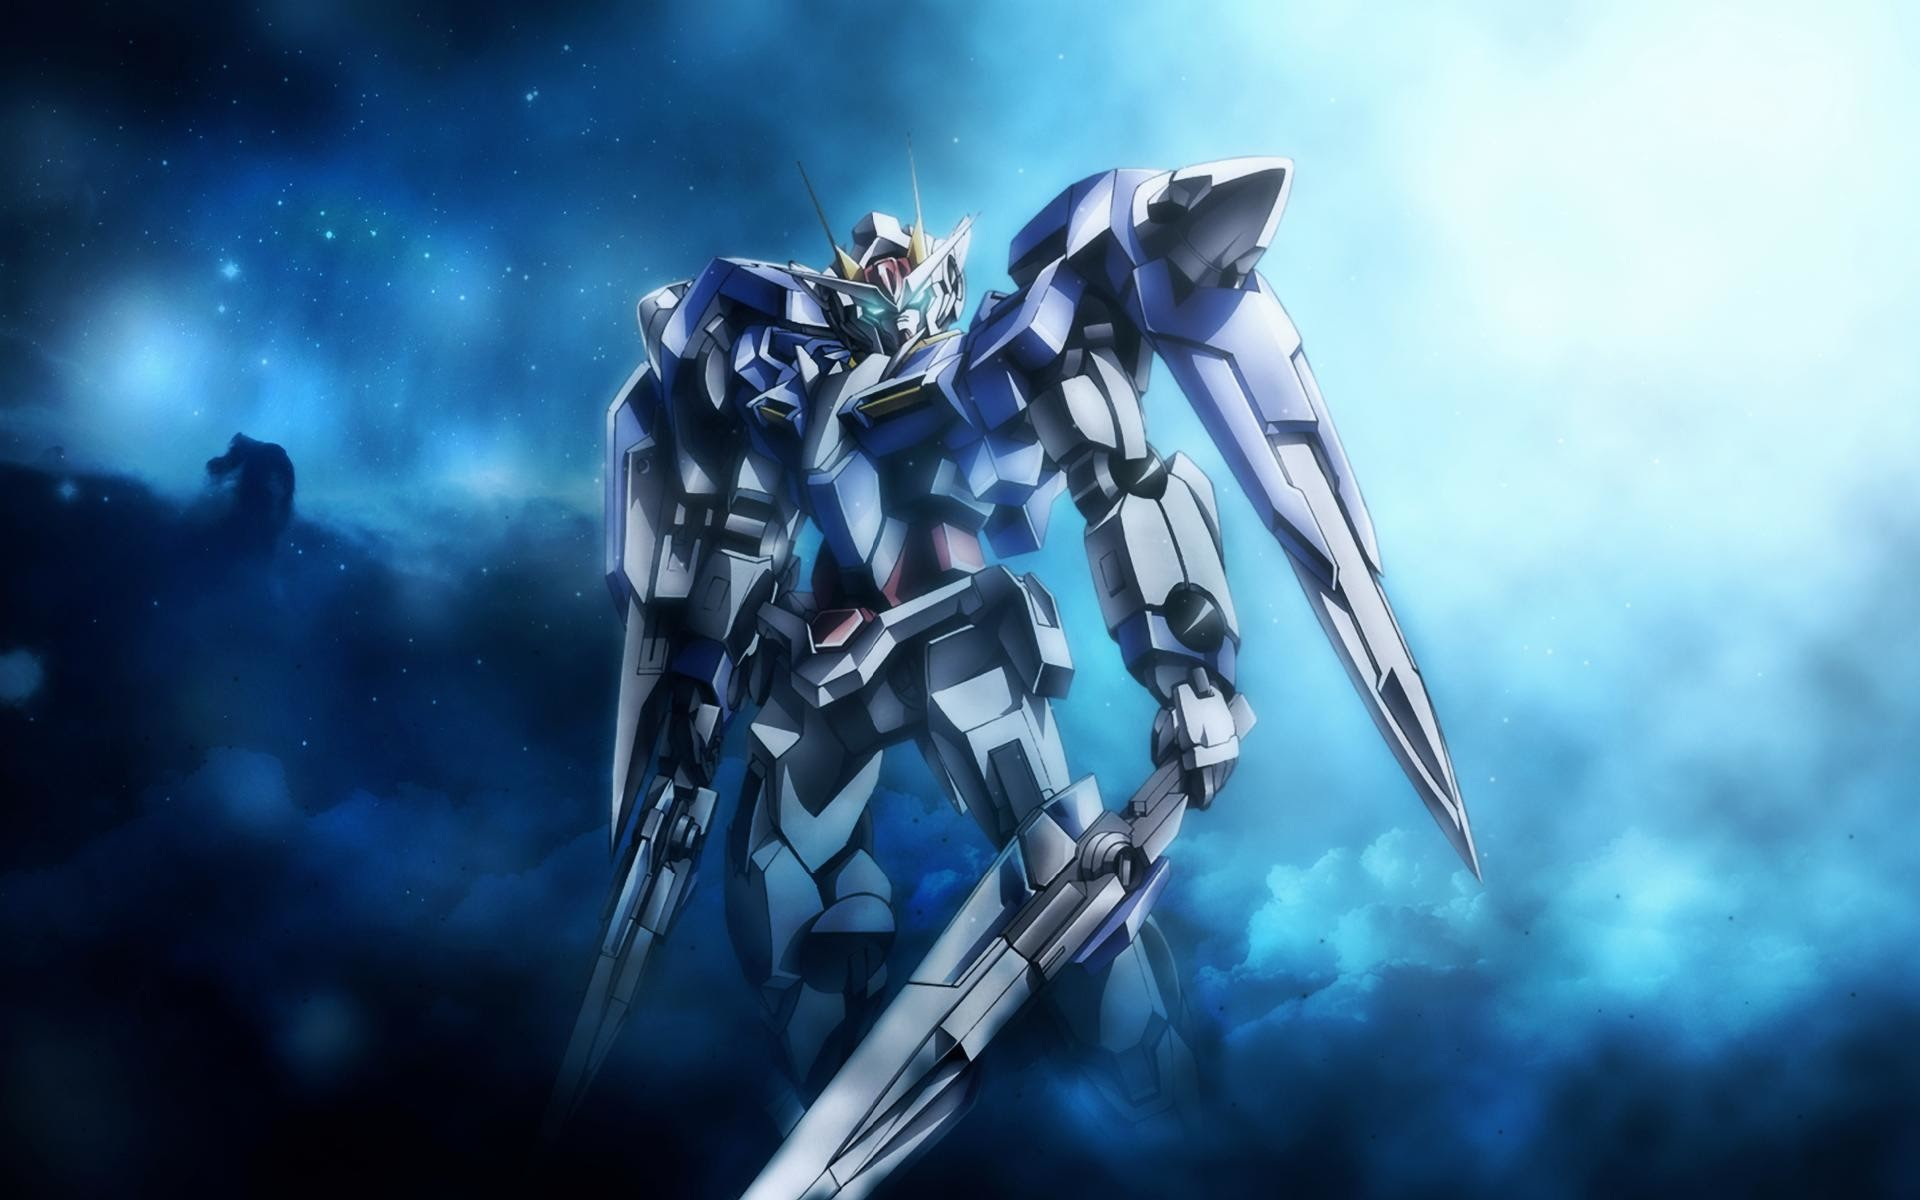 Gundam 00 Hd Wallpaper 71 Images